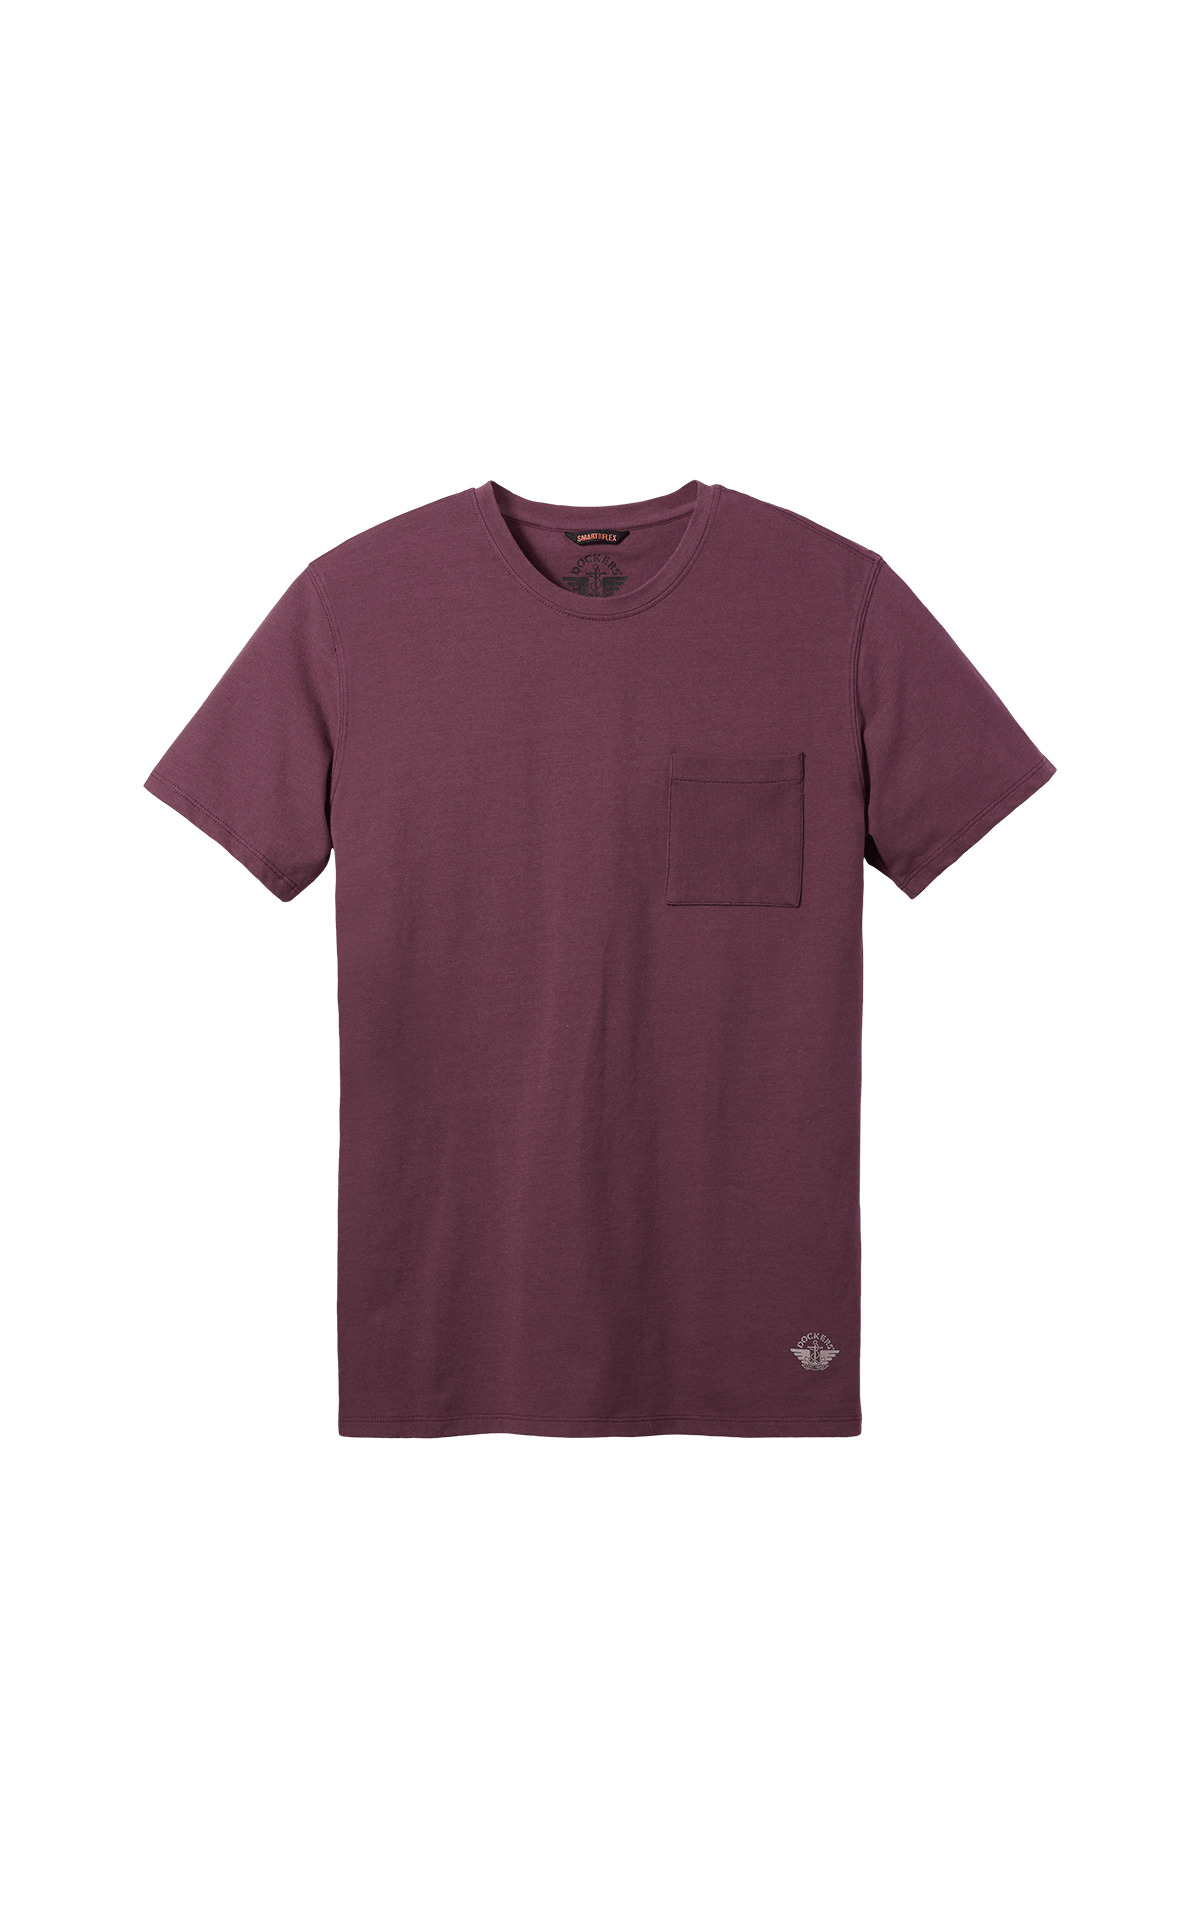 Burgundy T-shirt short sleeves with a pocket for man Dockers